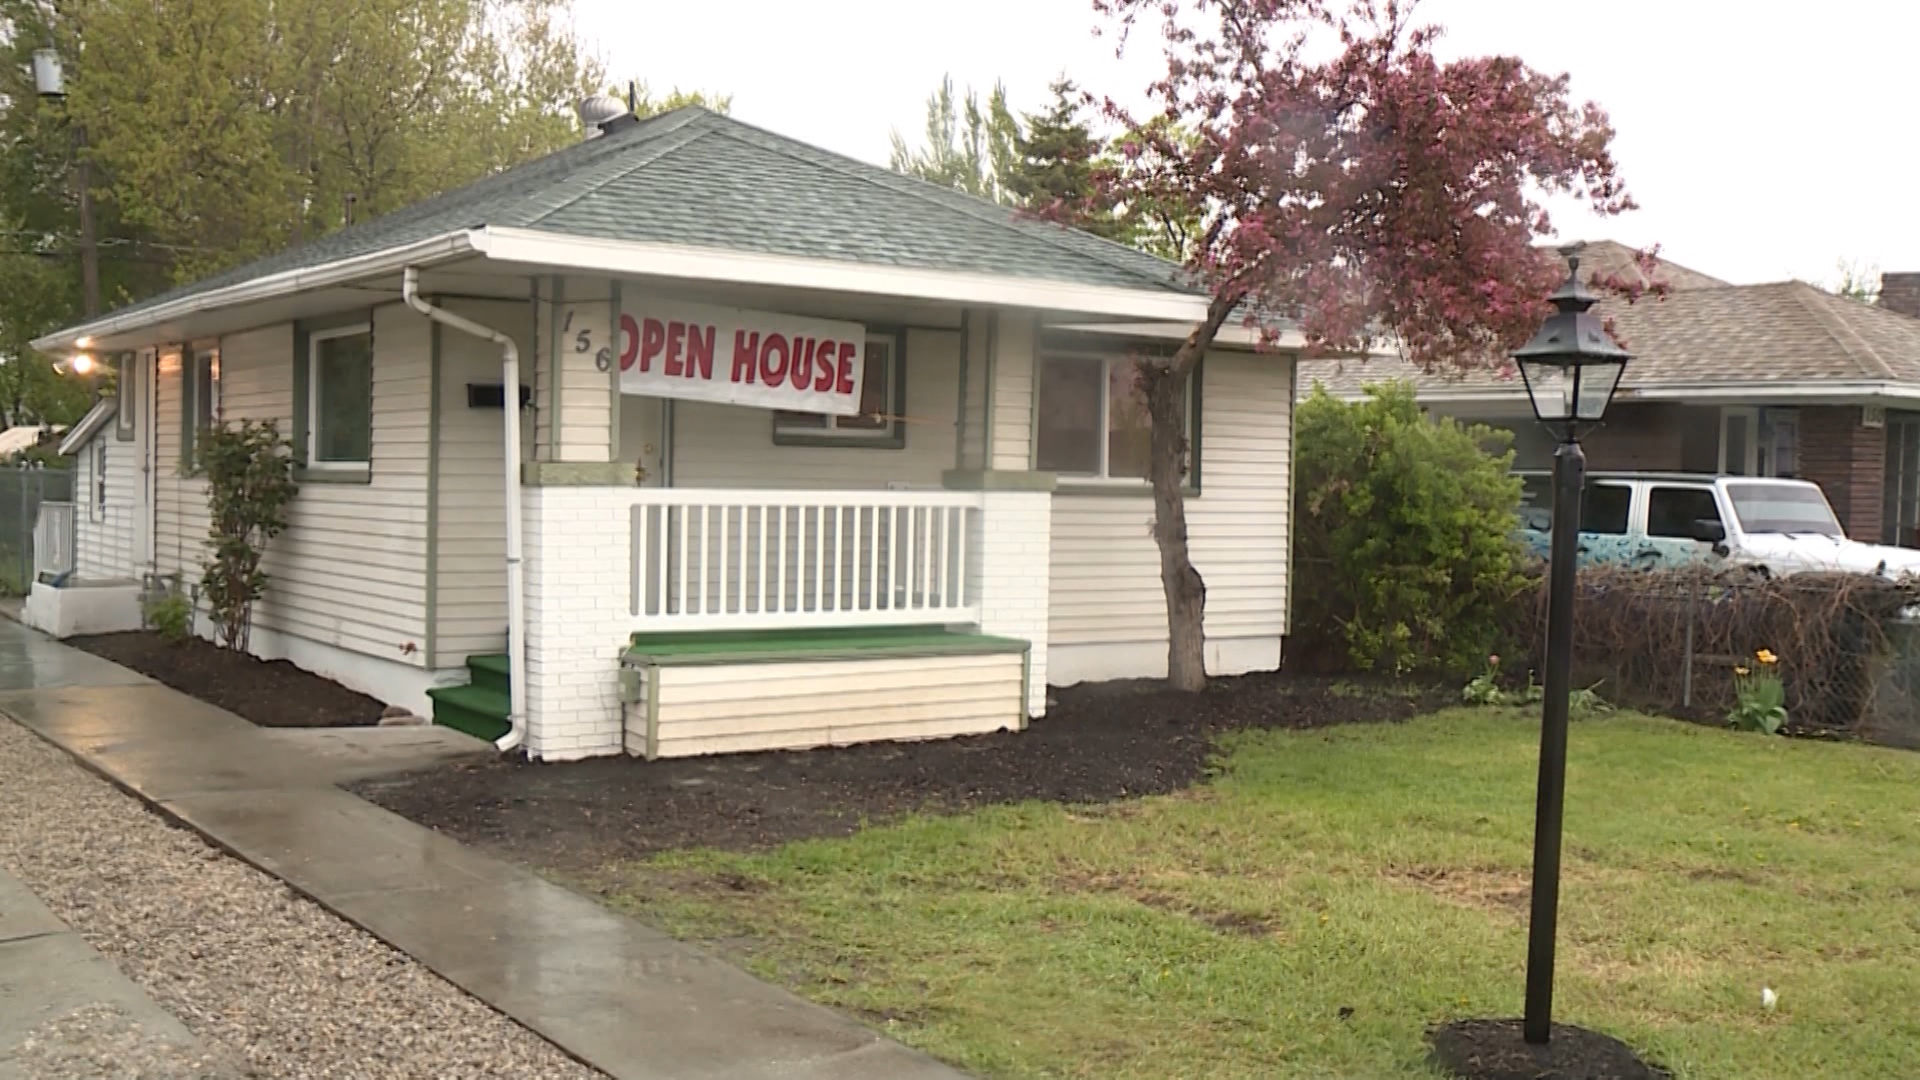 South Salt Lake residents seeing neighborhood improvements thanks to 'Idea House'